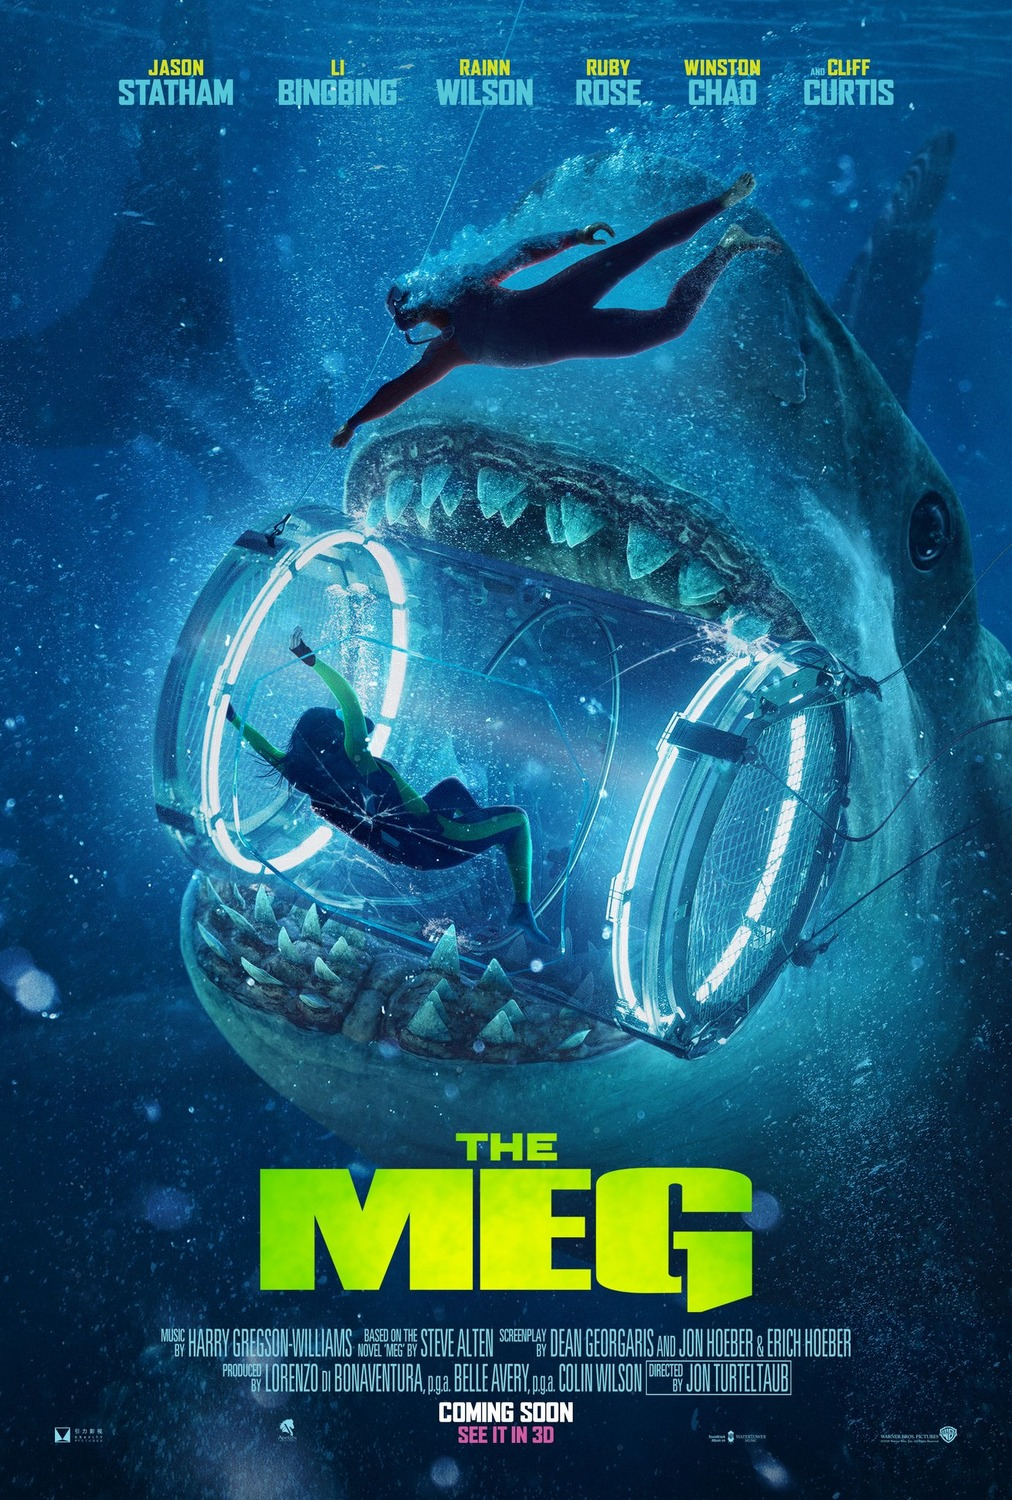 The Meg | Teaser Trailer